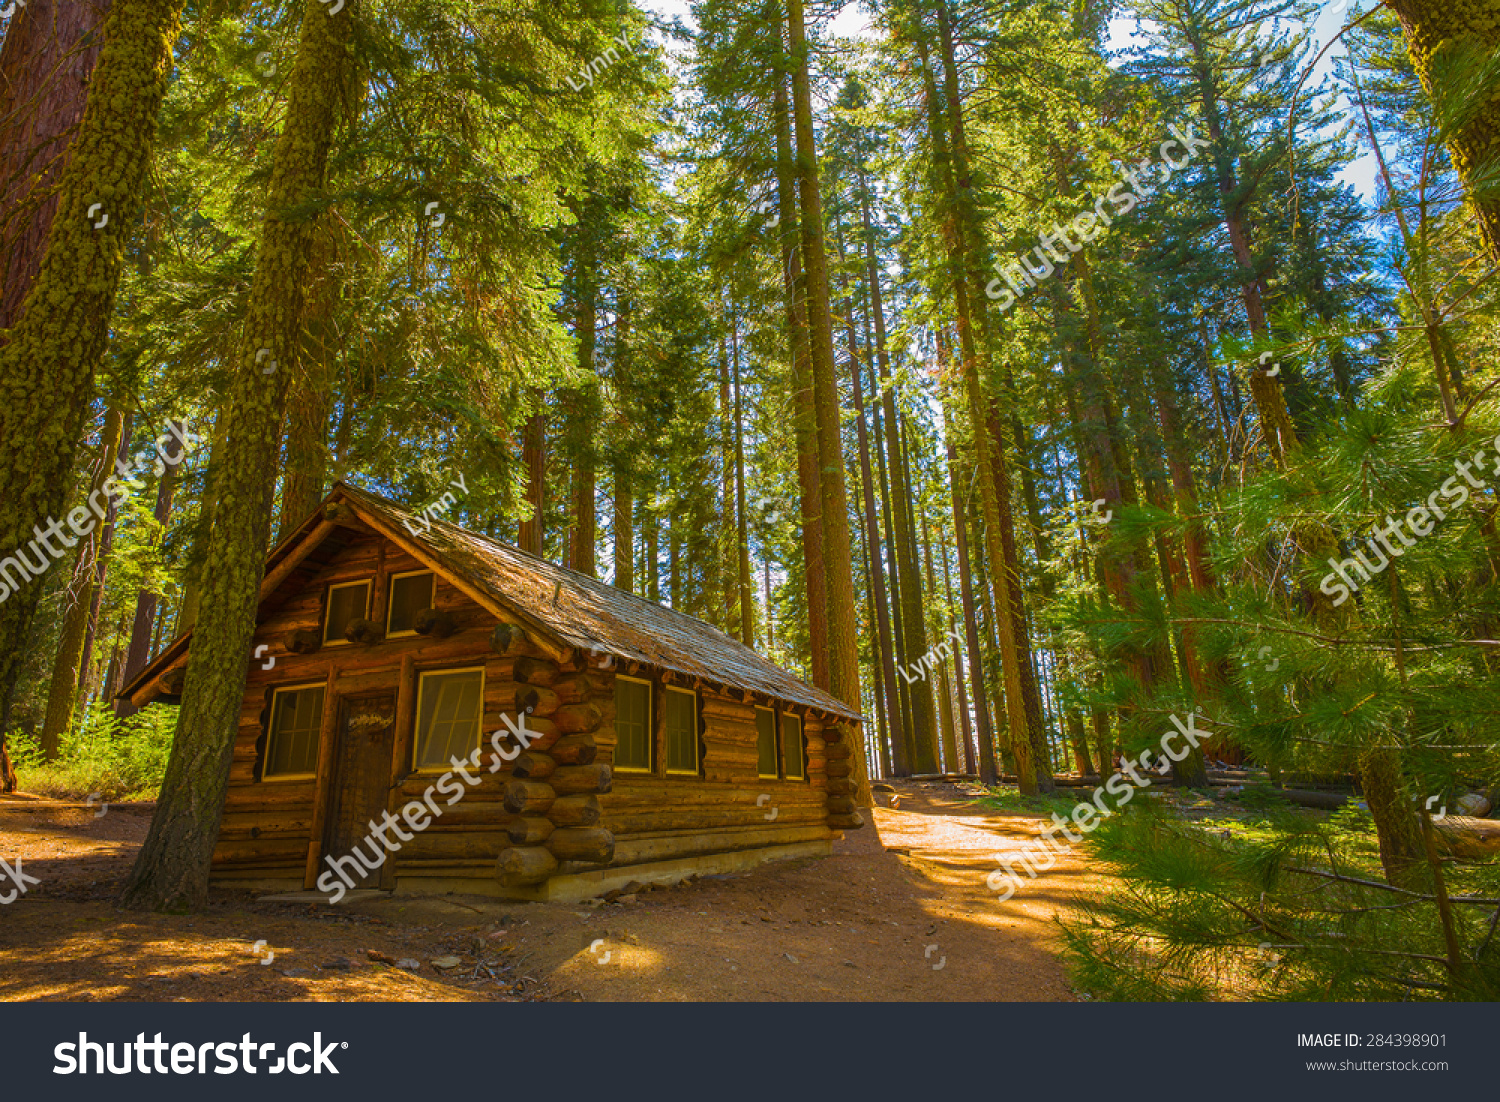 now cabins california howstuffworks in winter national iconic falls after park storm tunnel tree htm sequoia intense